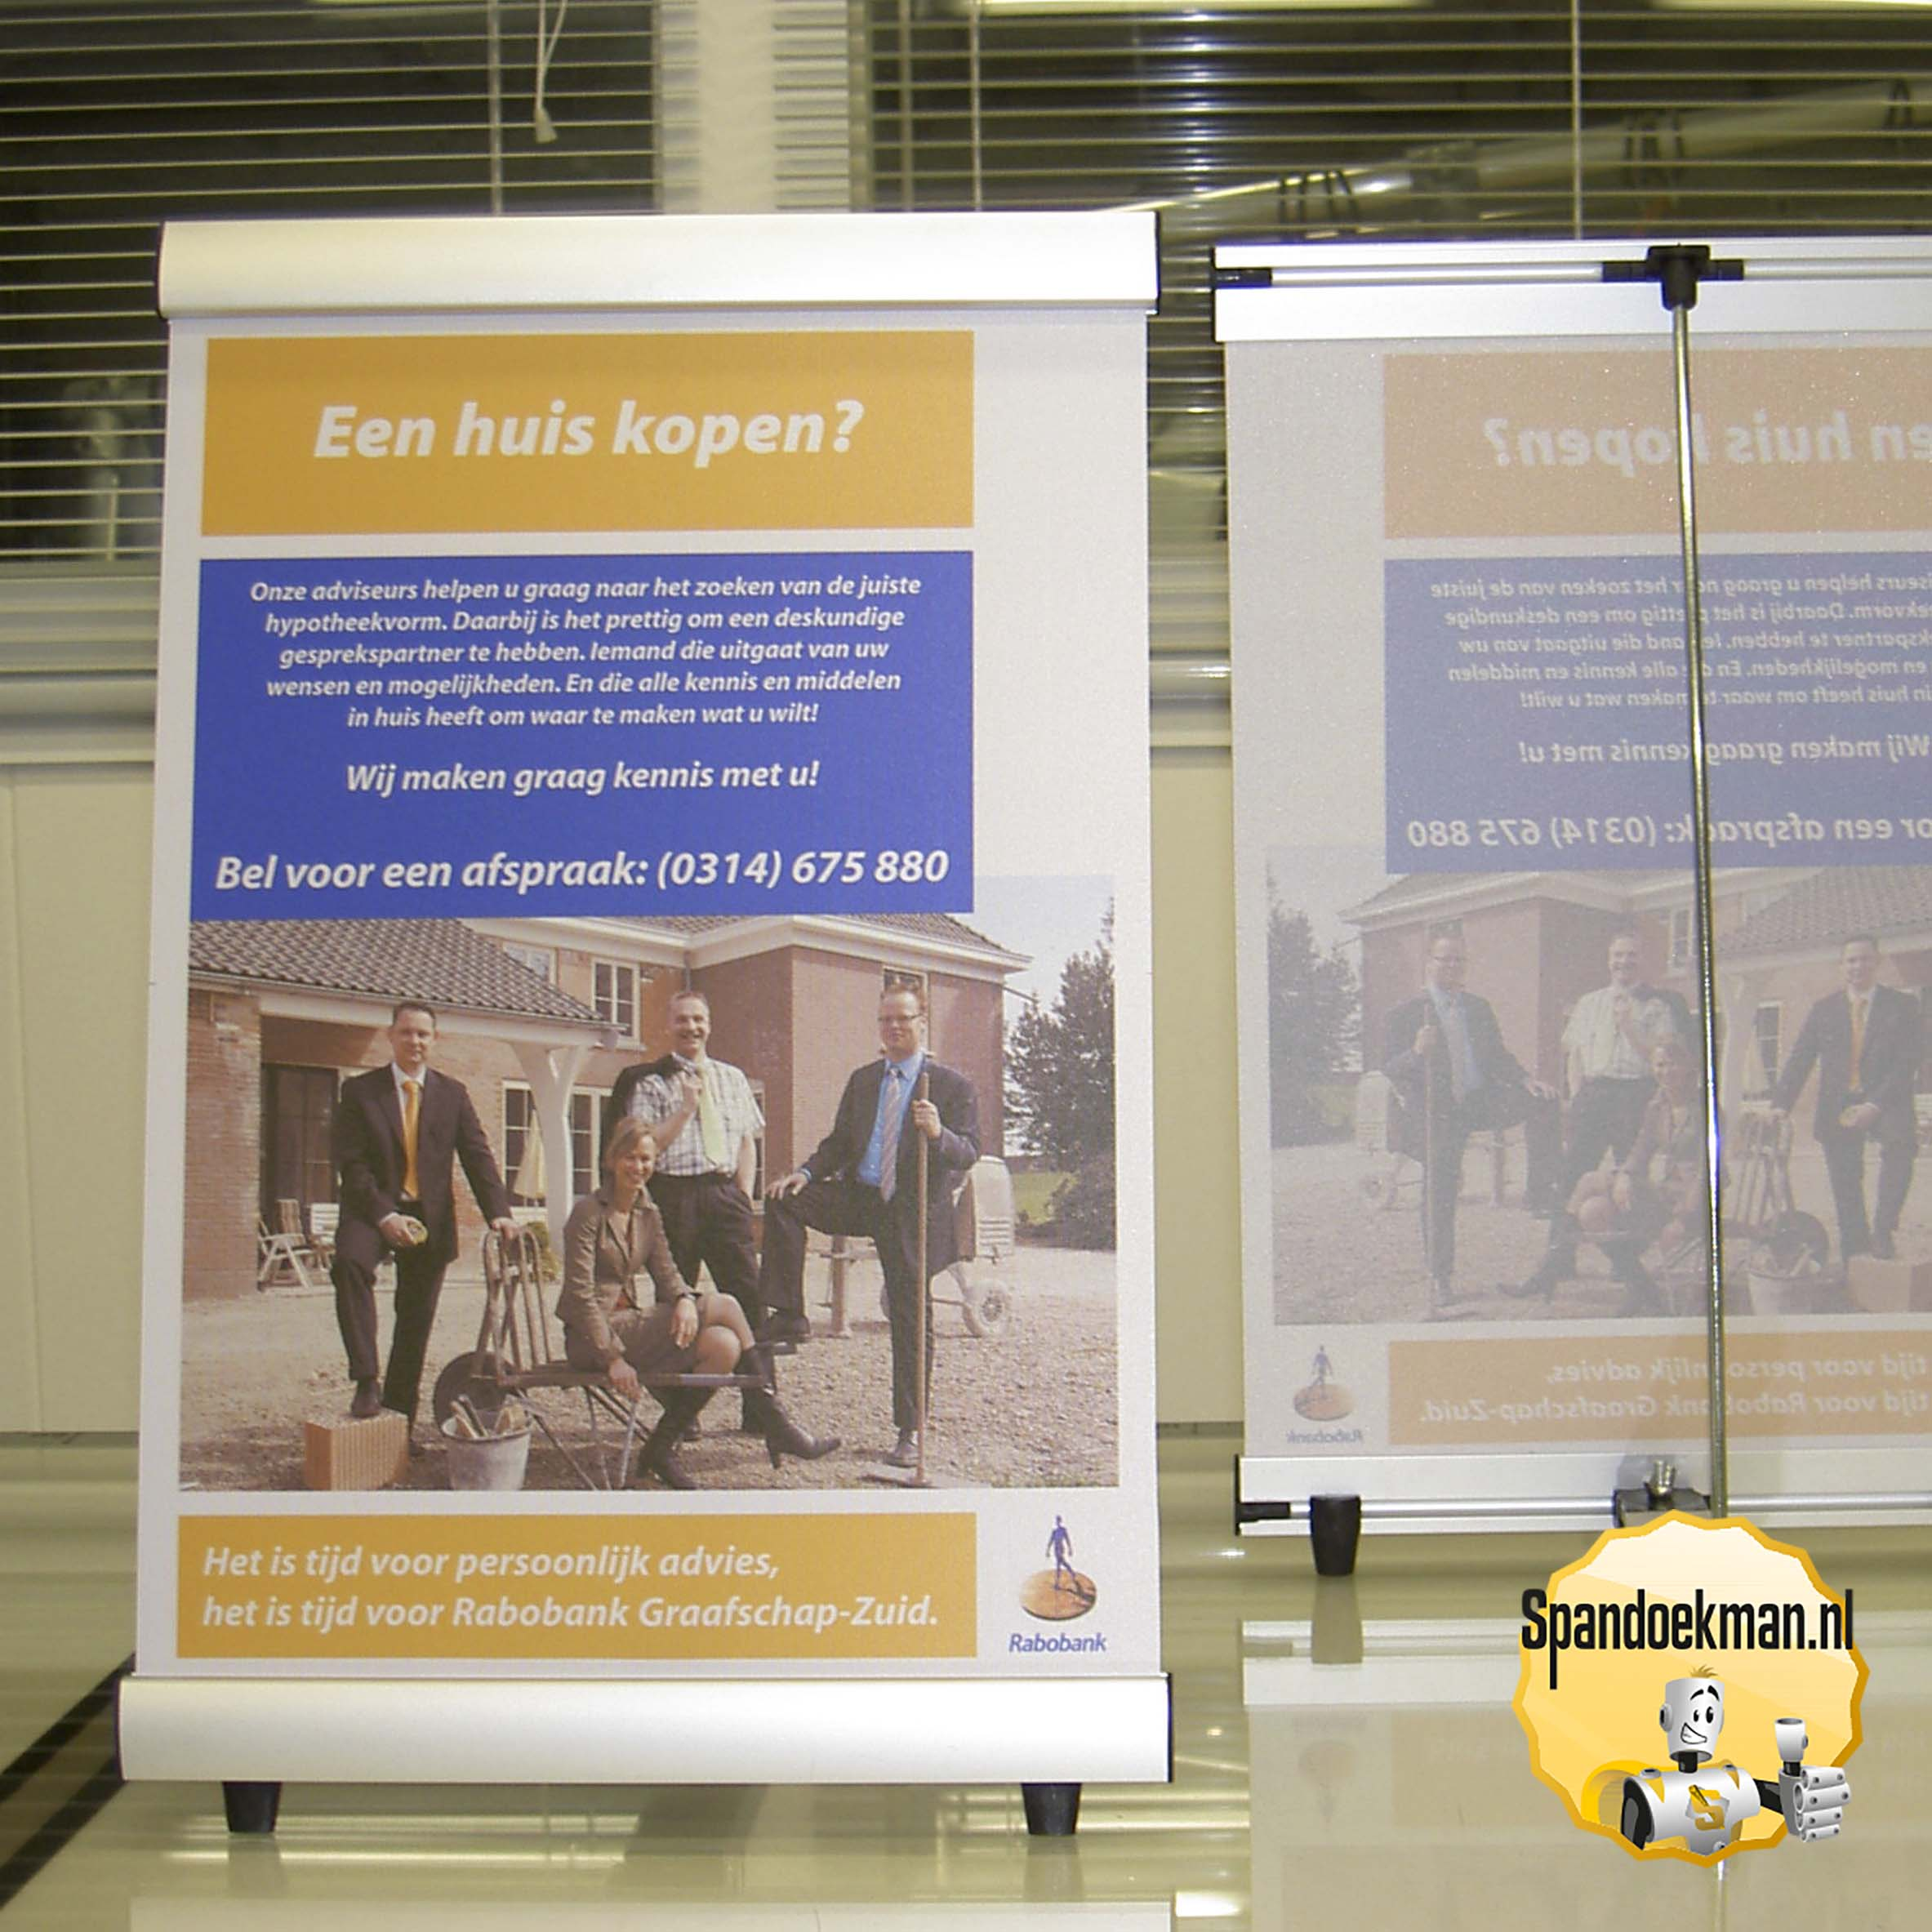 Roll Up Banner Verlichting Roll-up Banners, Drukwerk, Reclame Specials - Spandoekman